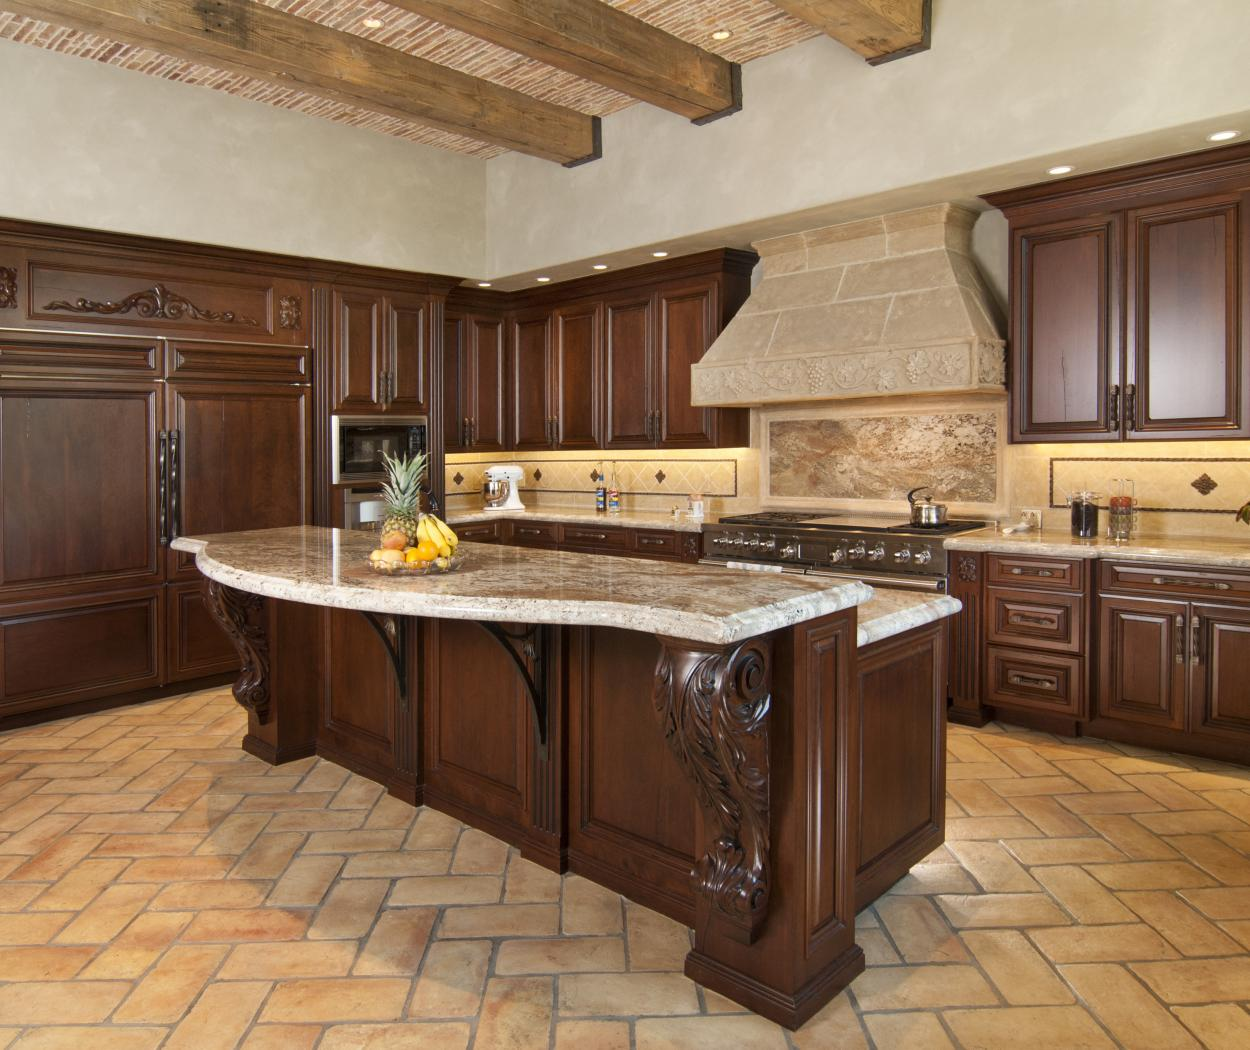 Traditional Kitchen with a Beautiful Cast Stone Hood, Decorative Corbels and Stainless Steel Appliances